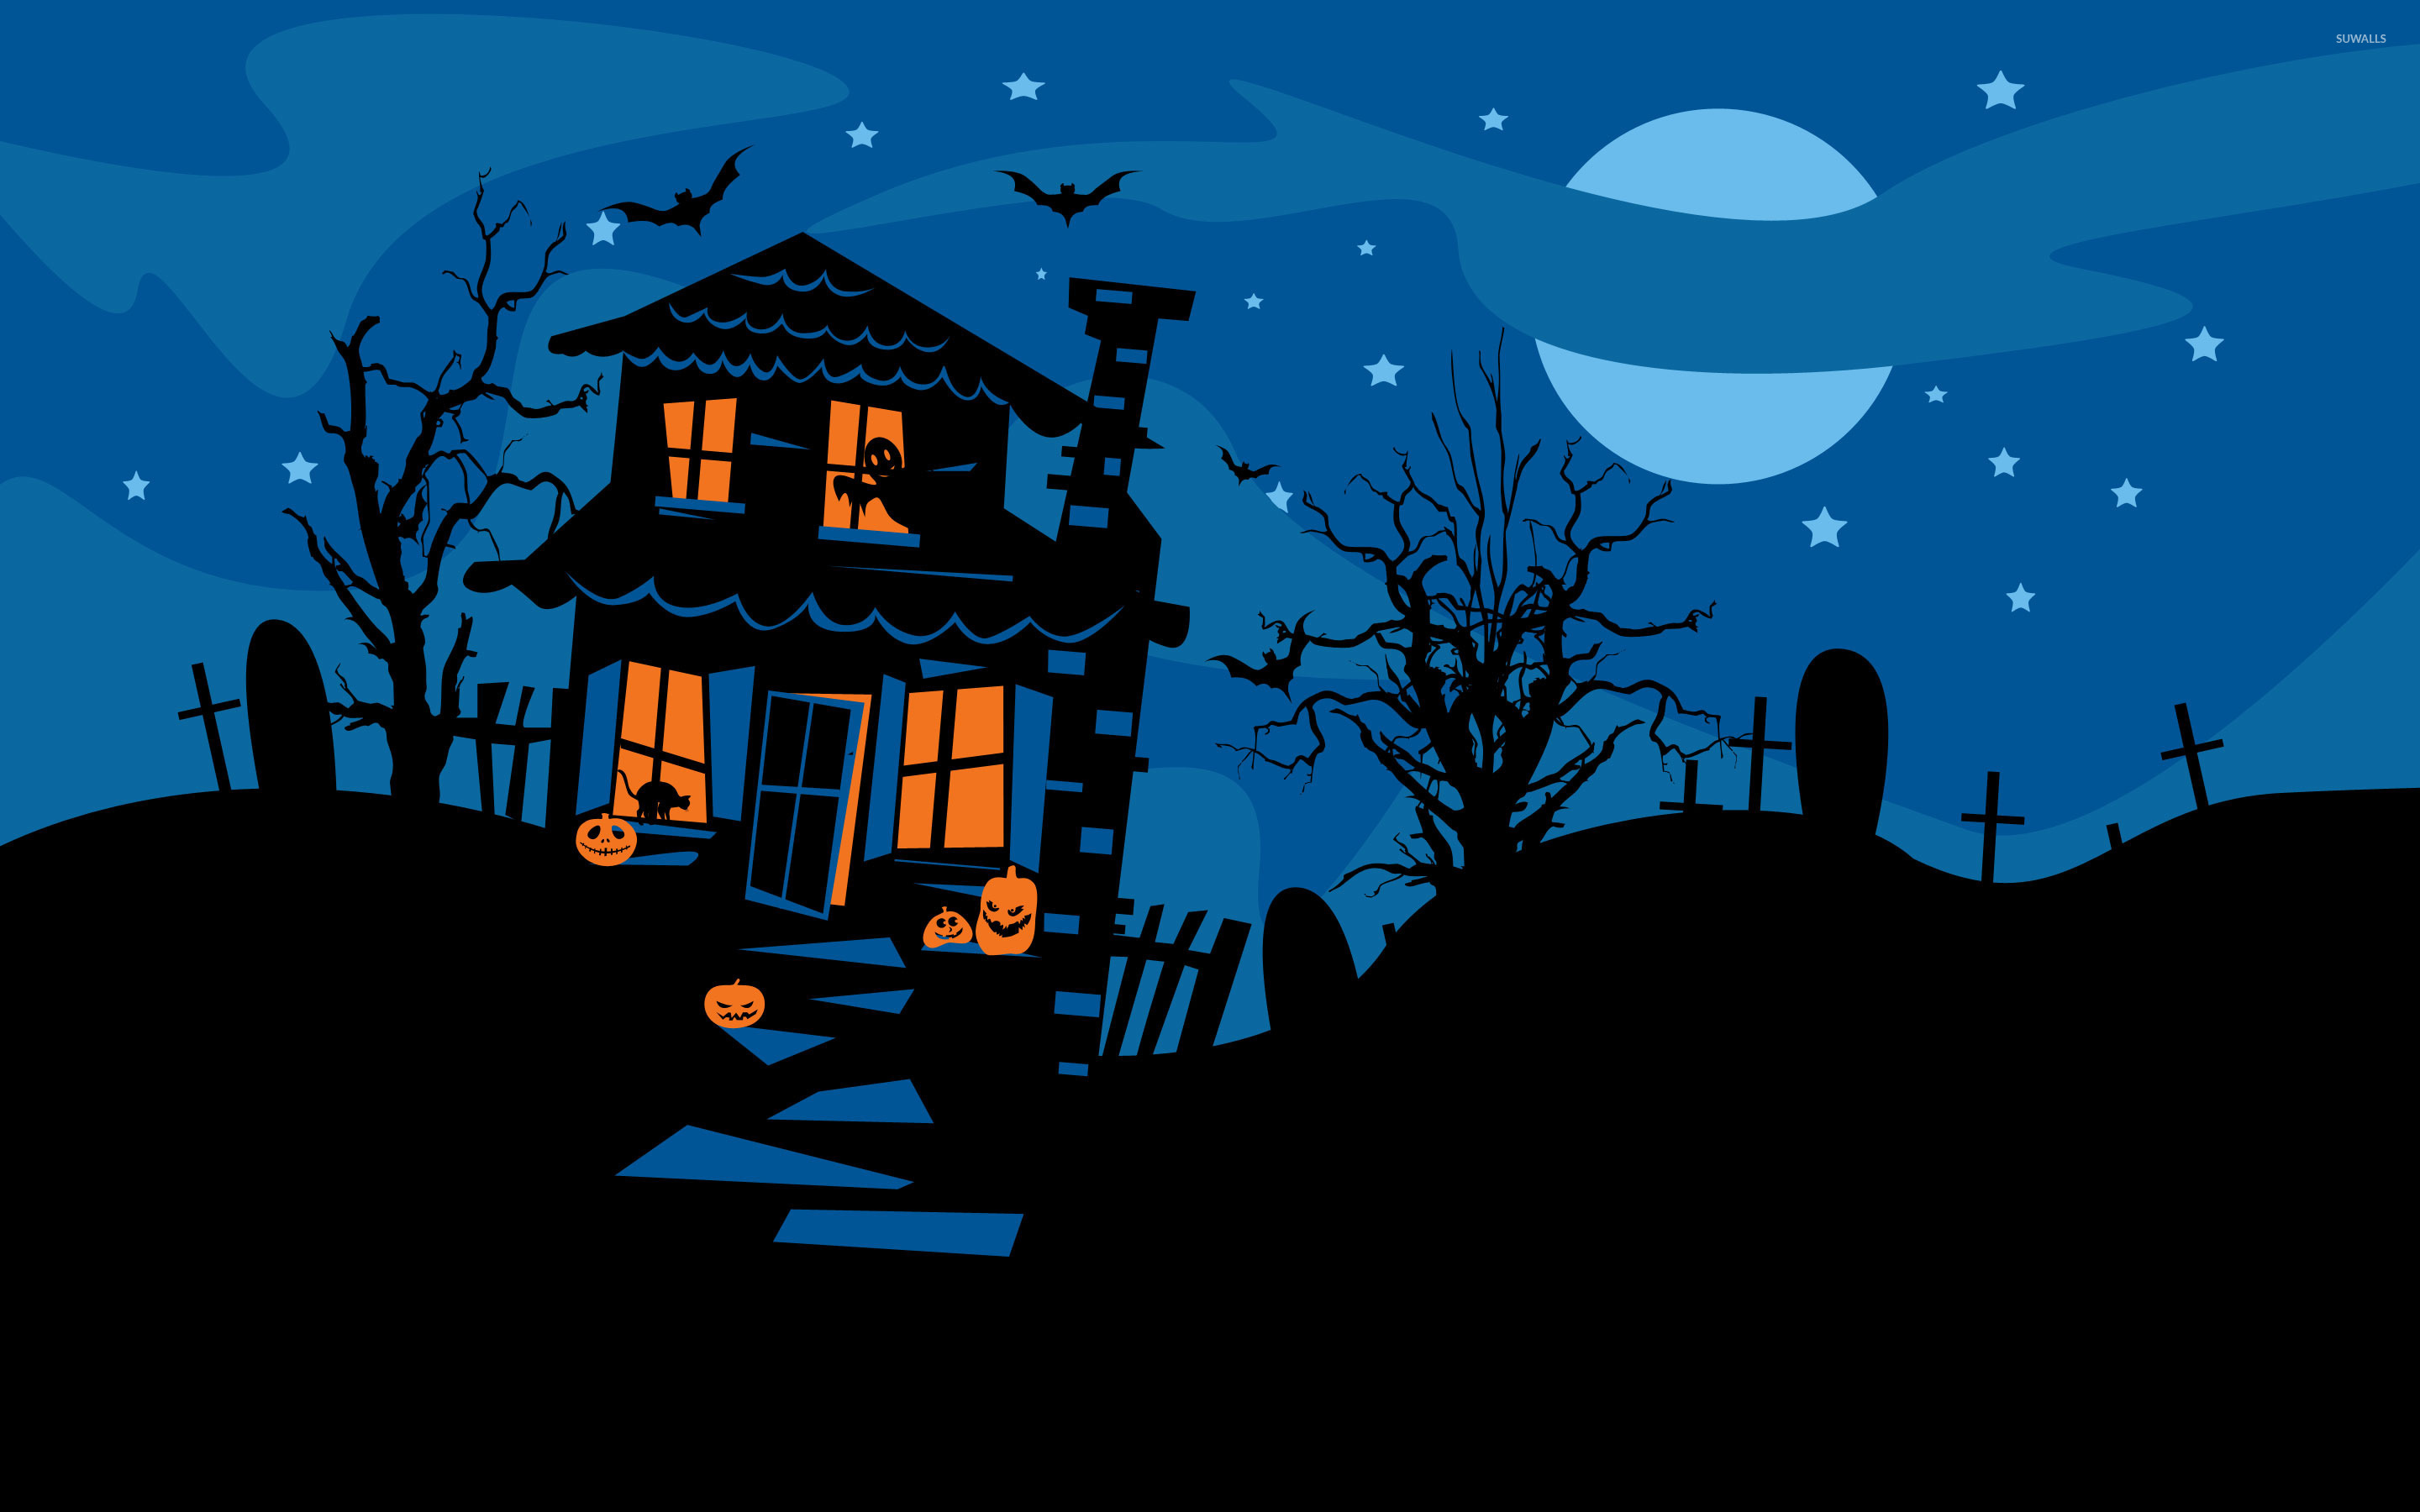 Drawn haunted house animated CP Photos JSRJSR NM House